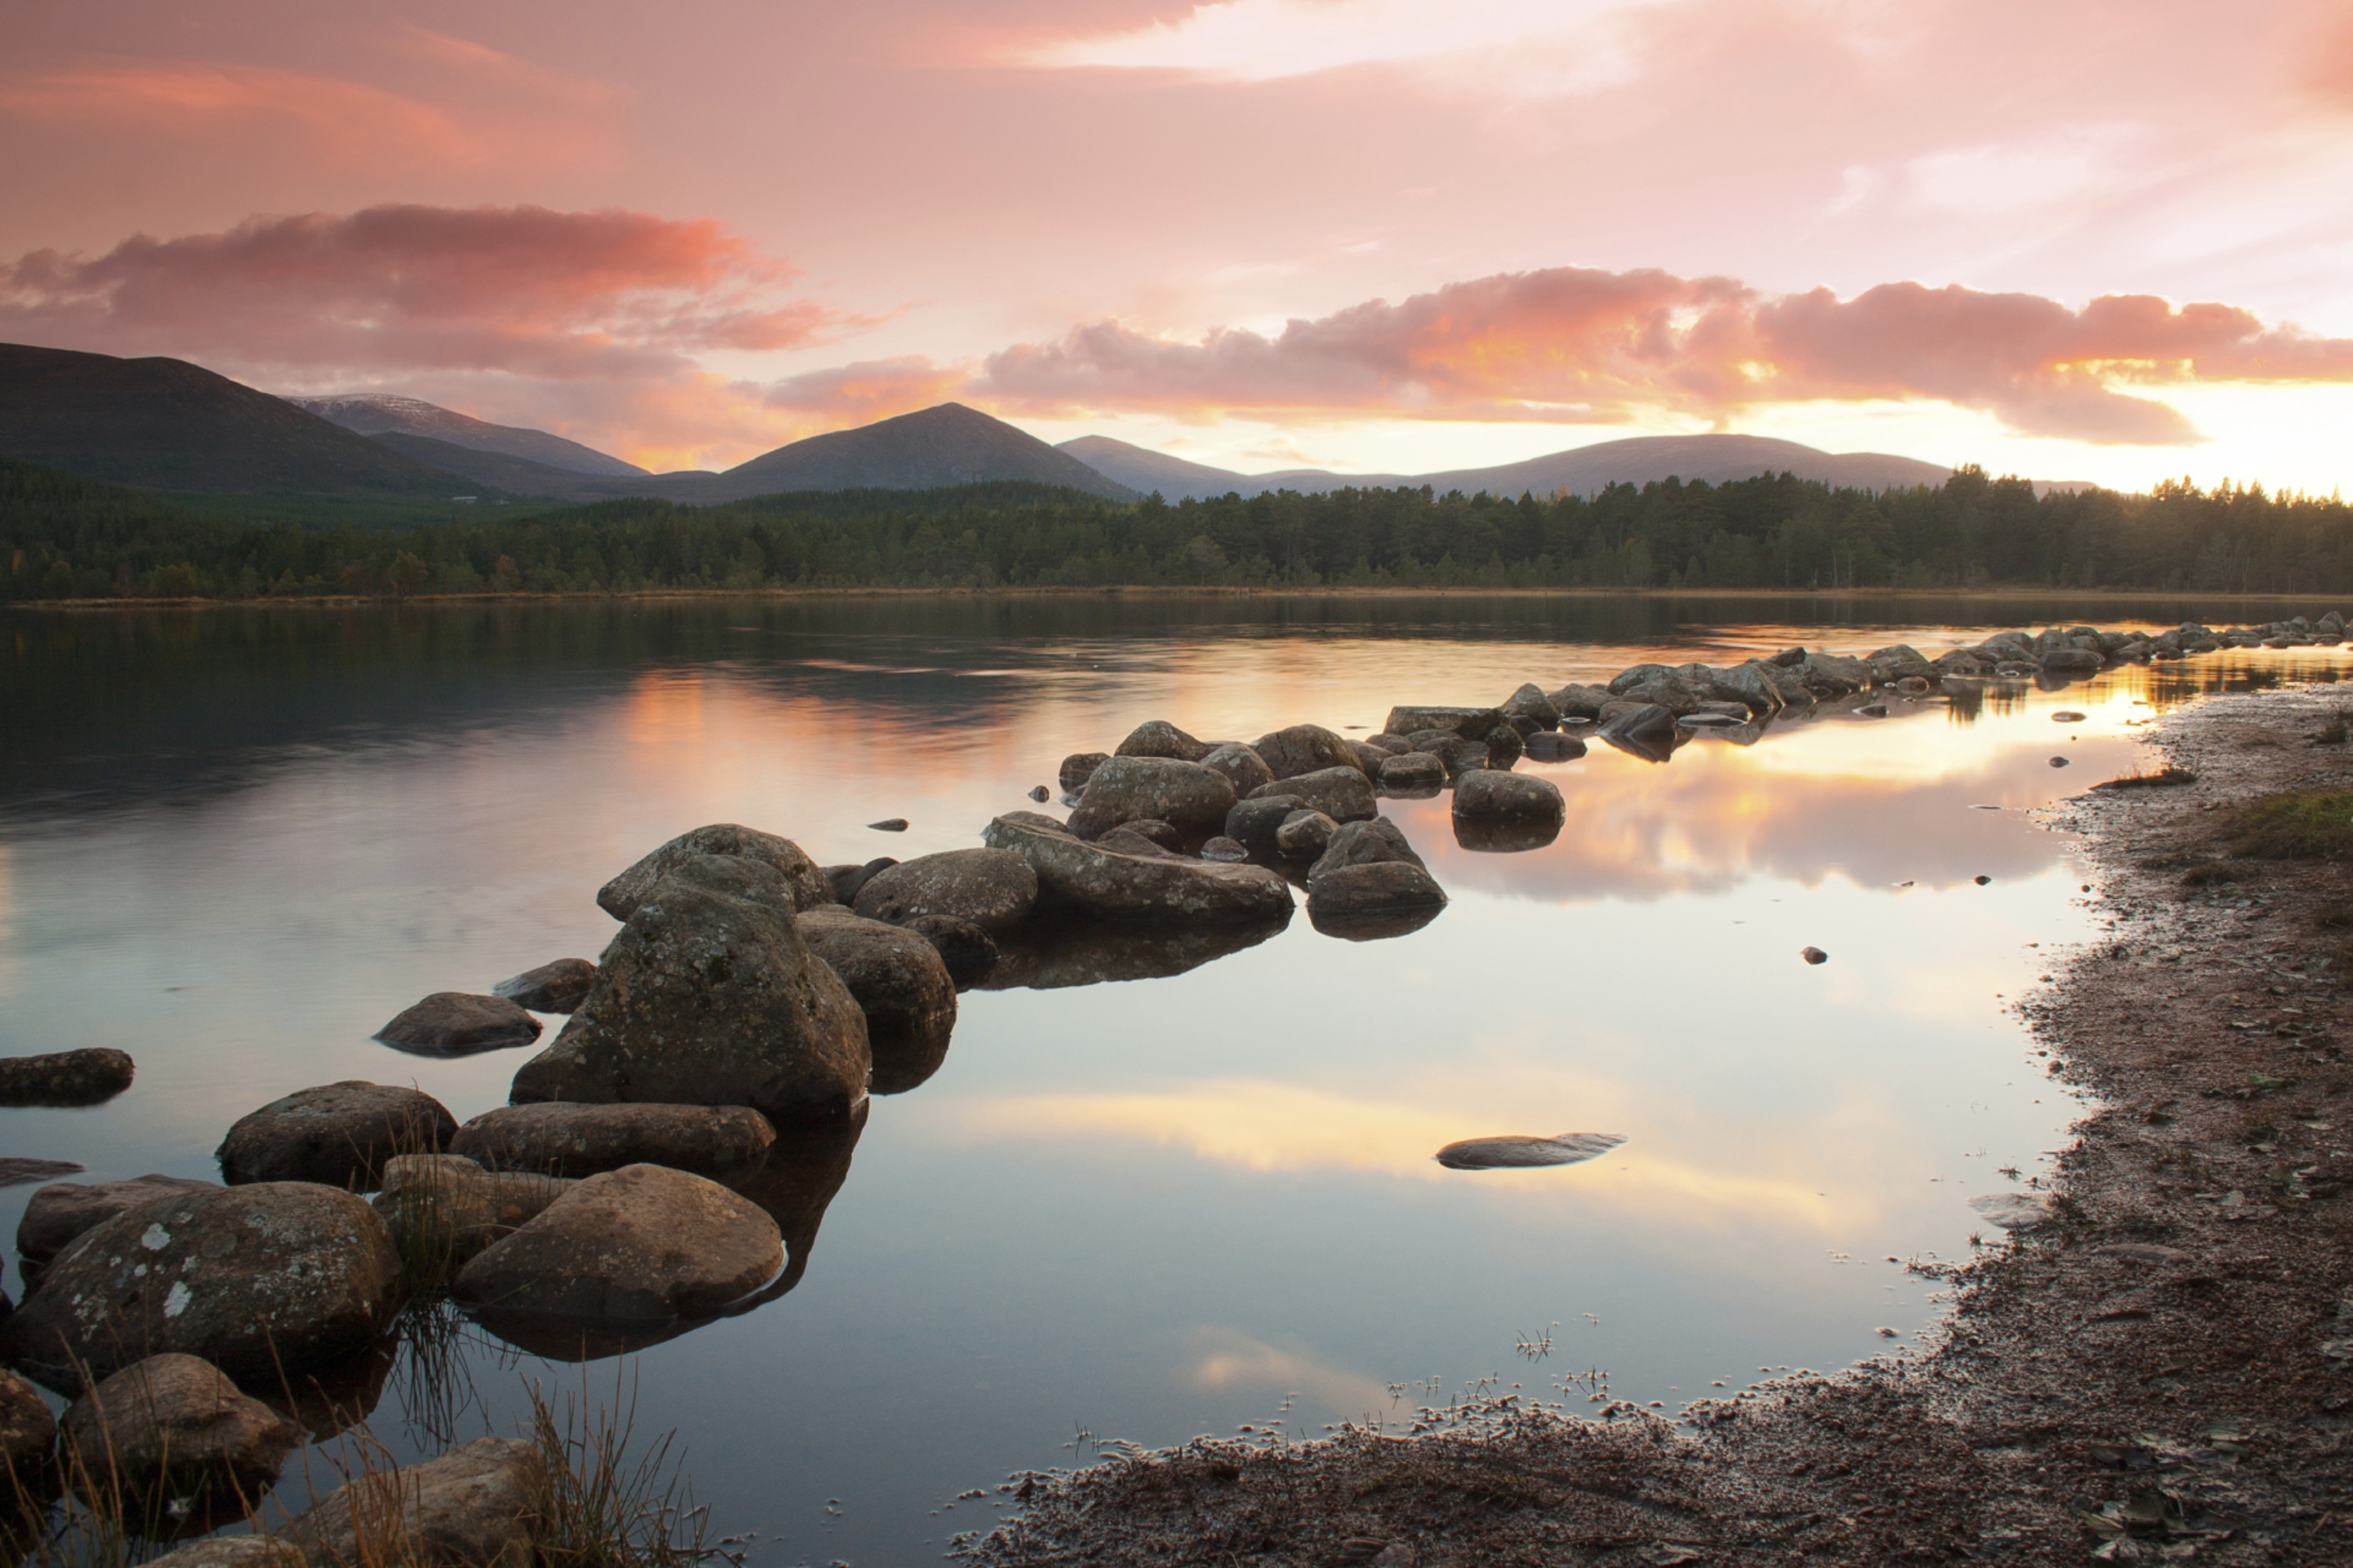 Loch Morlich in the Cairngorms at sunset.